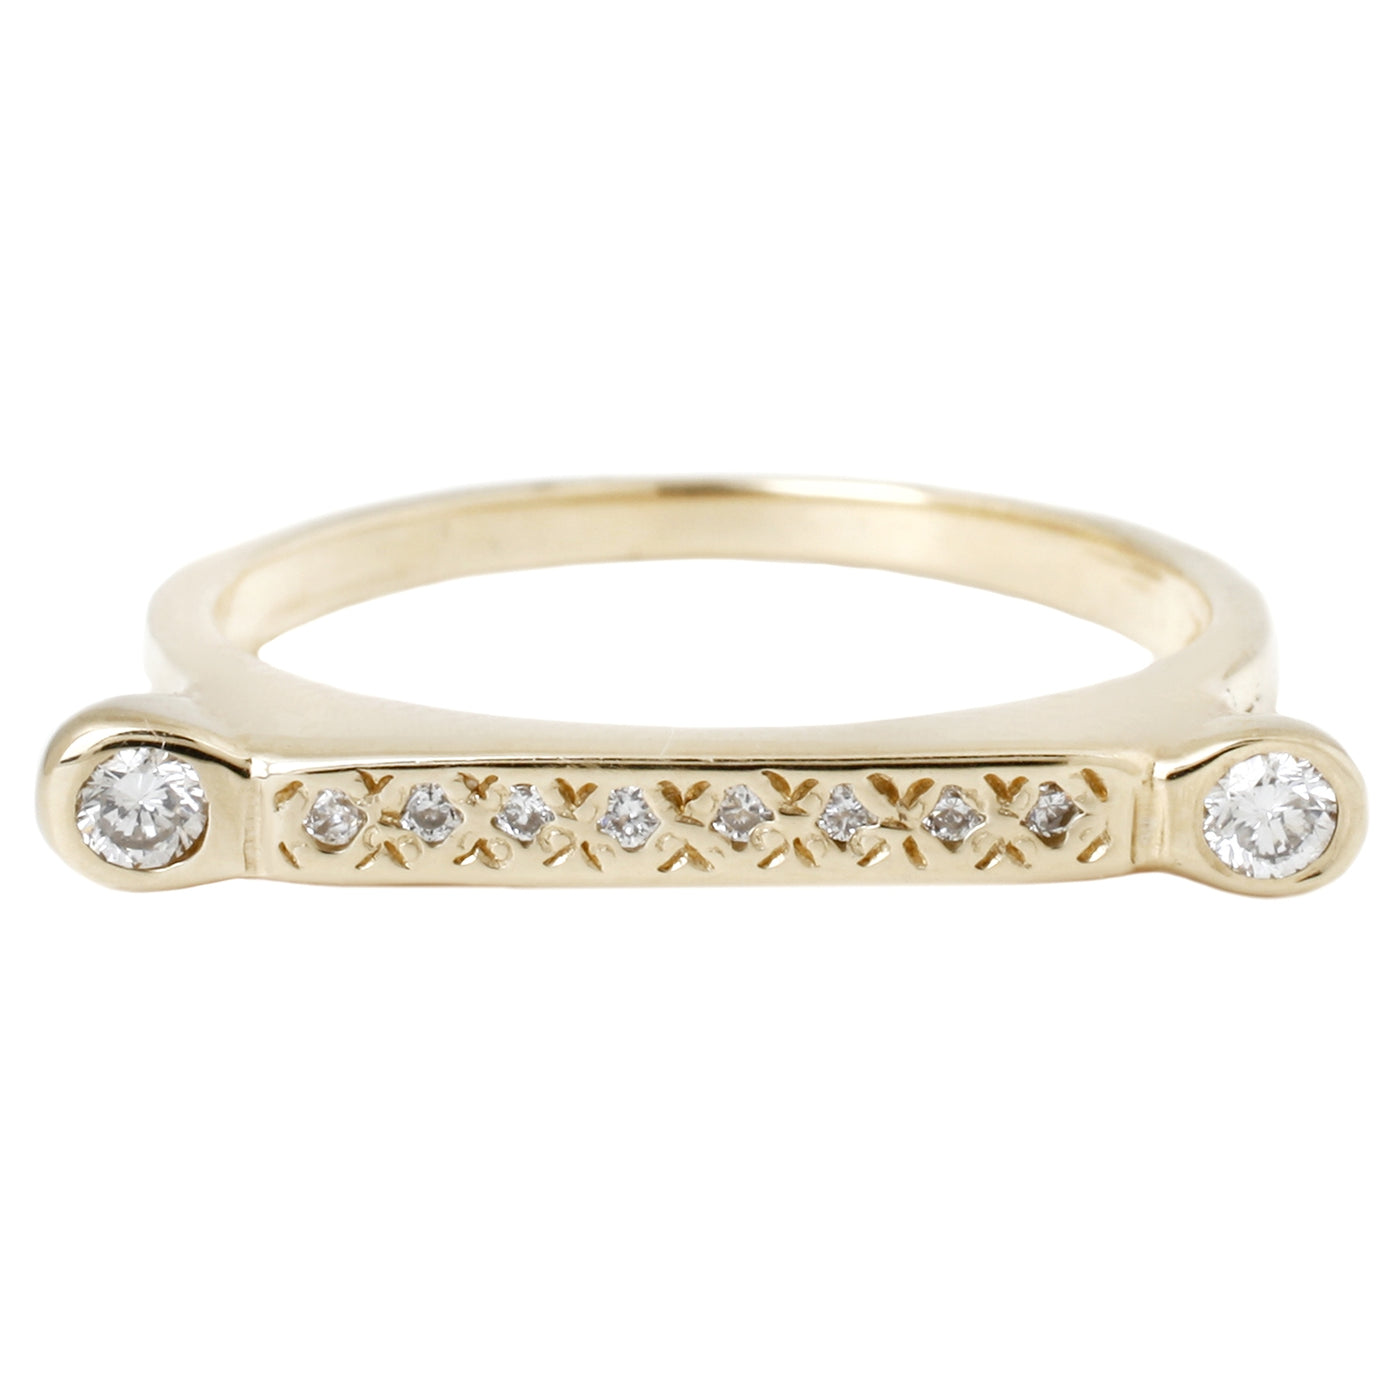 Scosha - Diamond Bar Ring - Yellow Gold With Pave White Diamonds and Two White Diamonds